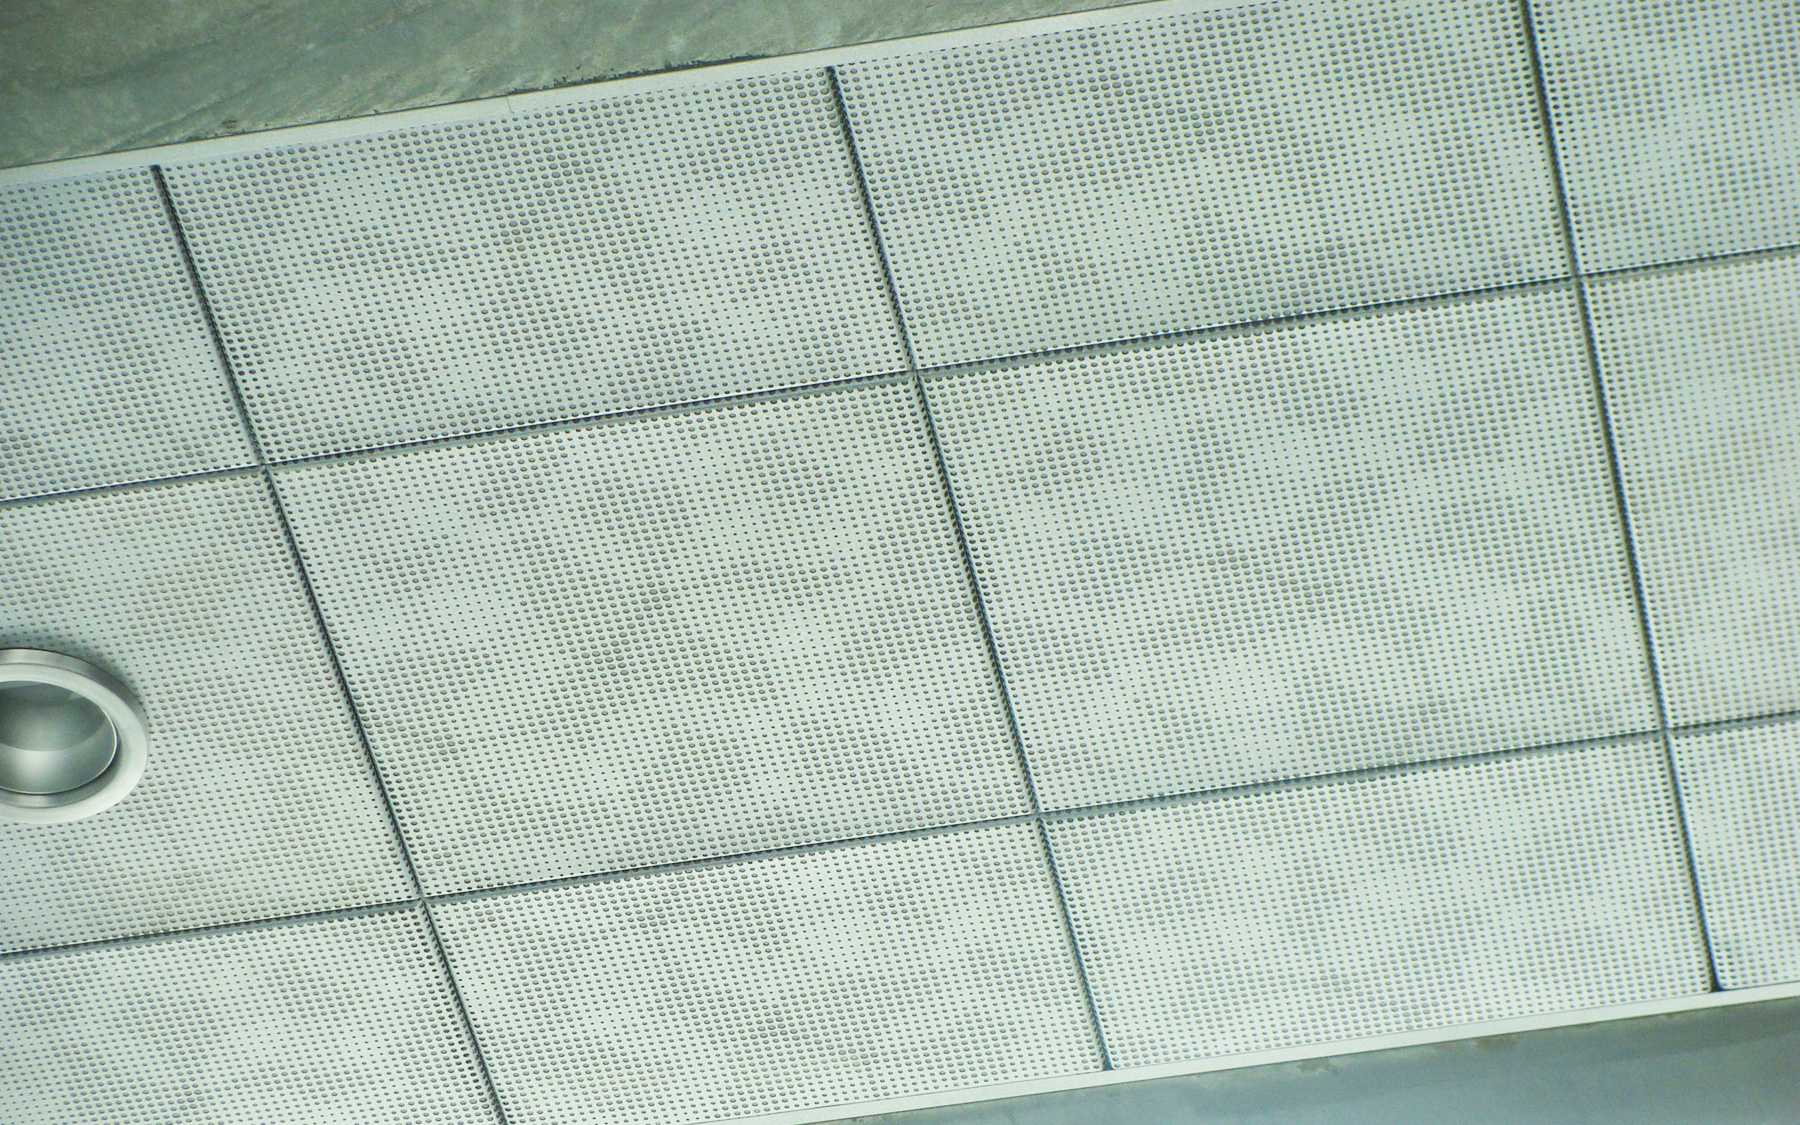 Tile, Perforation patterns